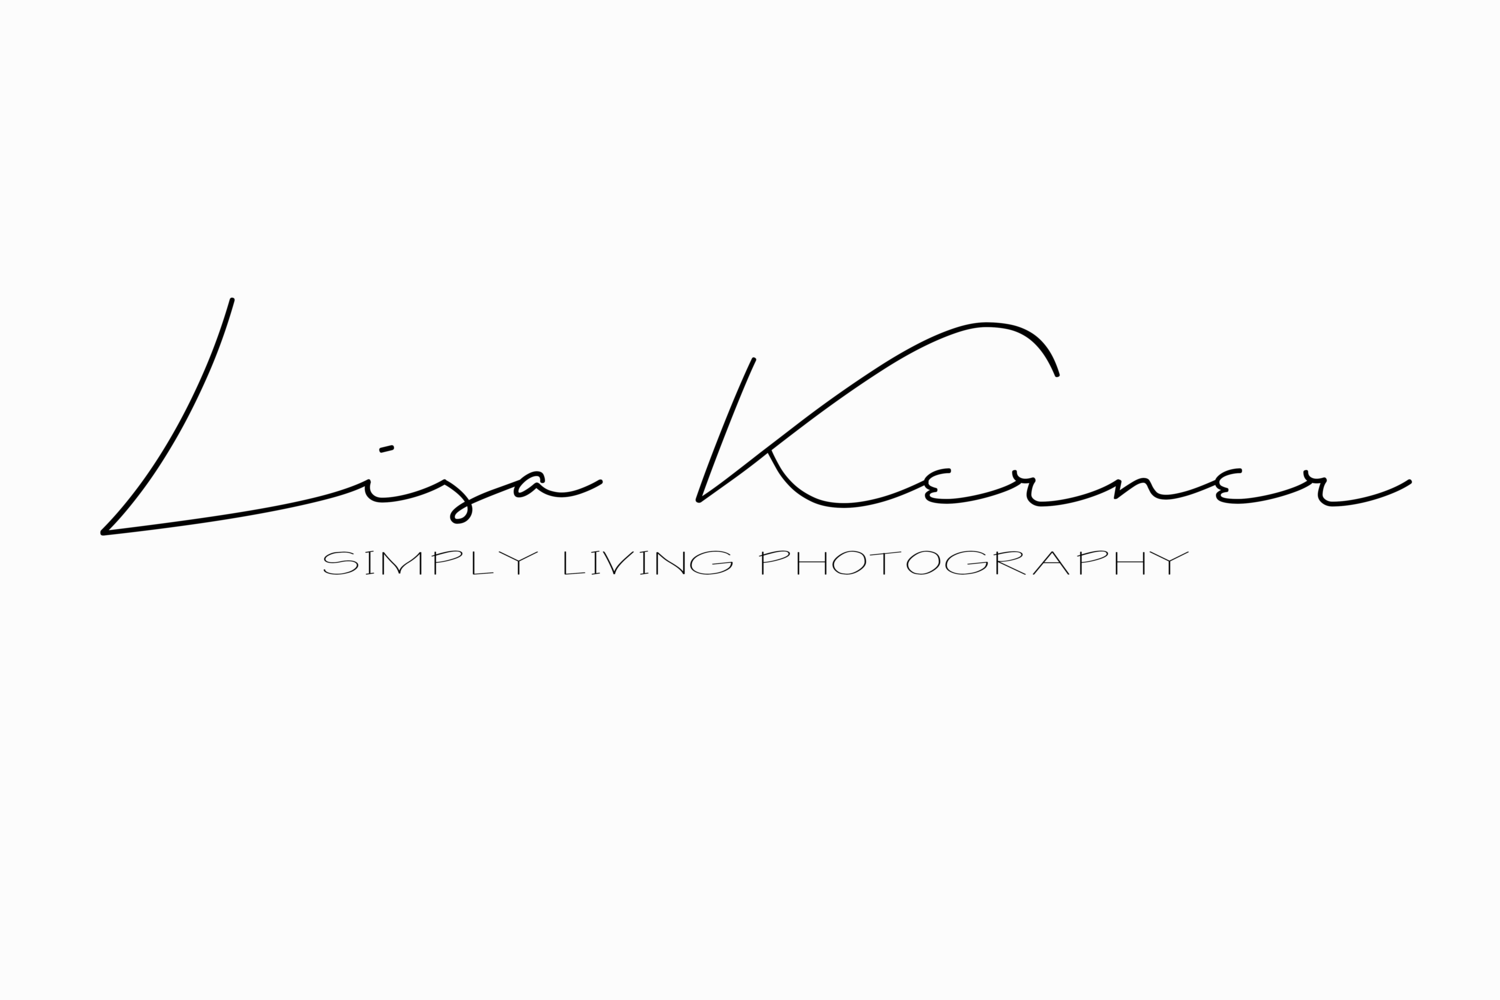 Lisa Kerner- Simply Living Photography